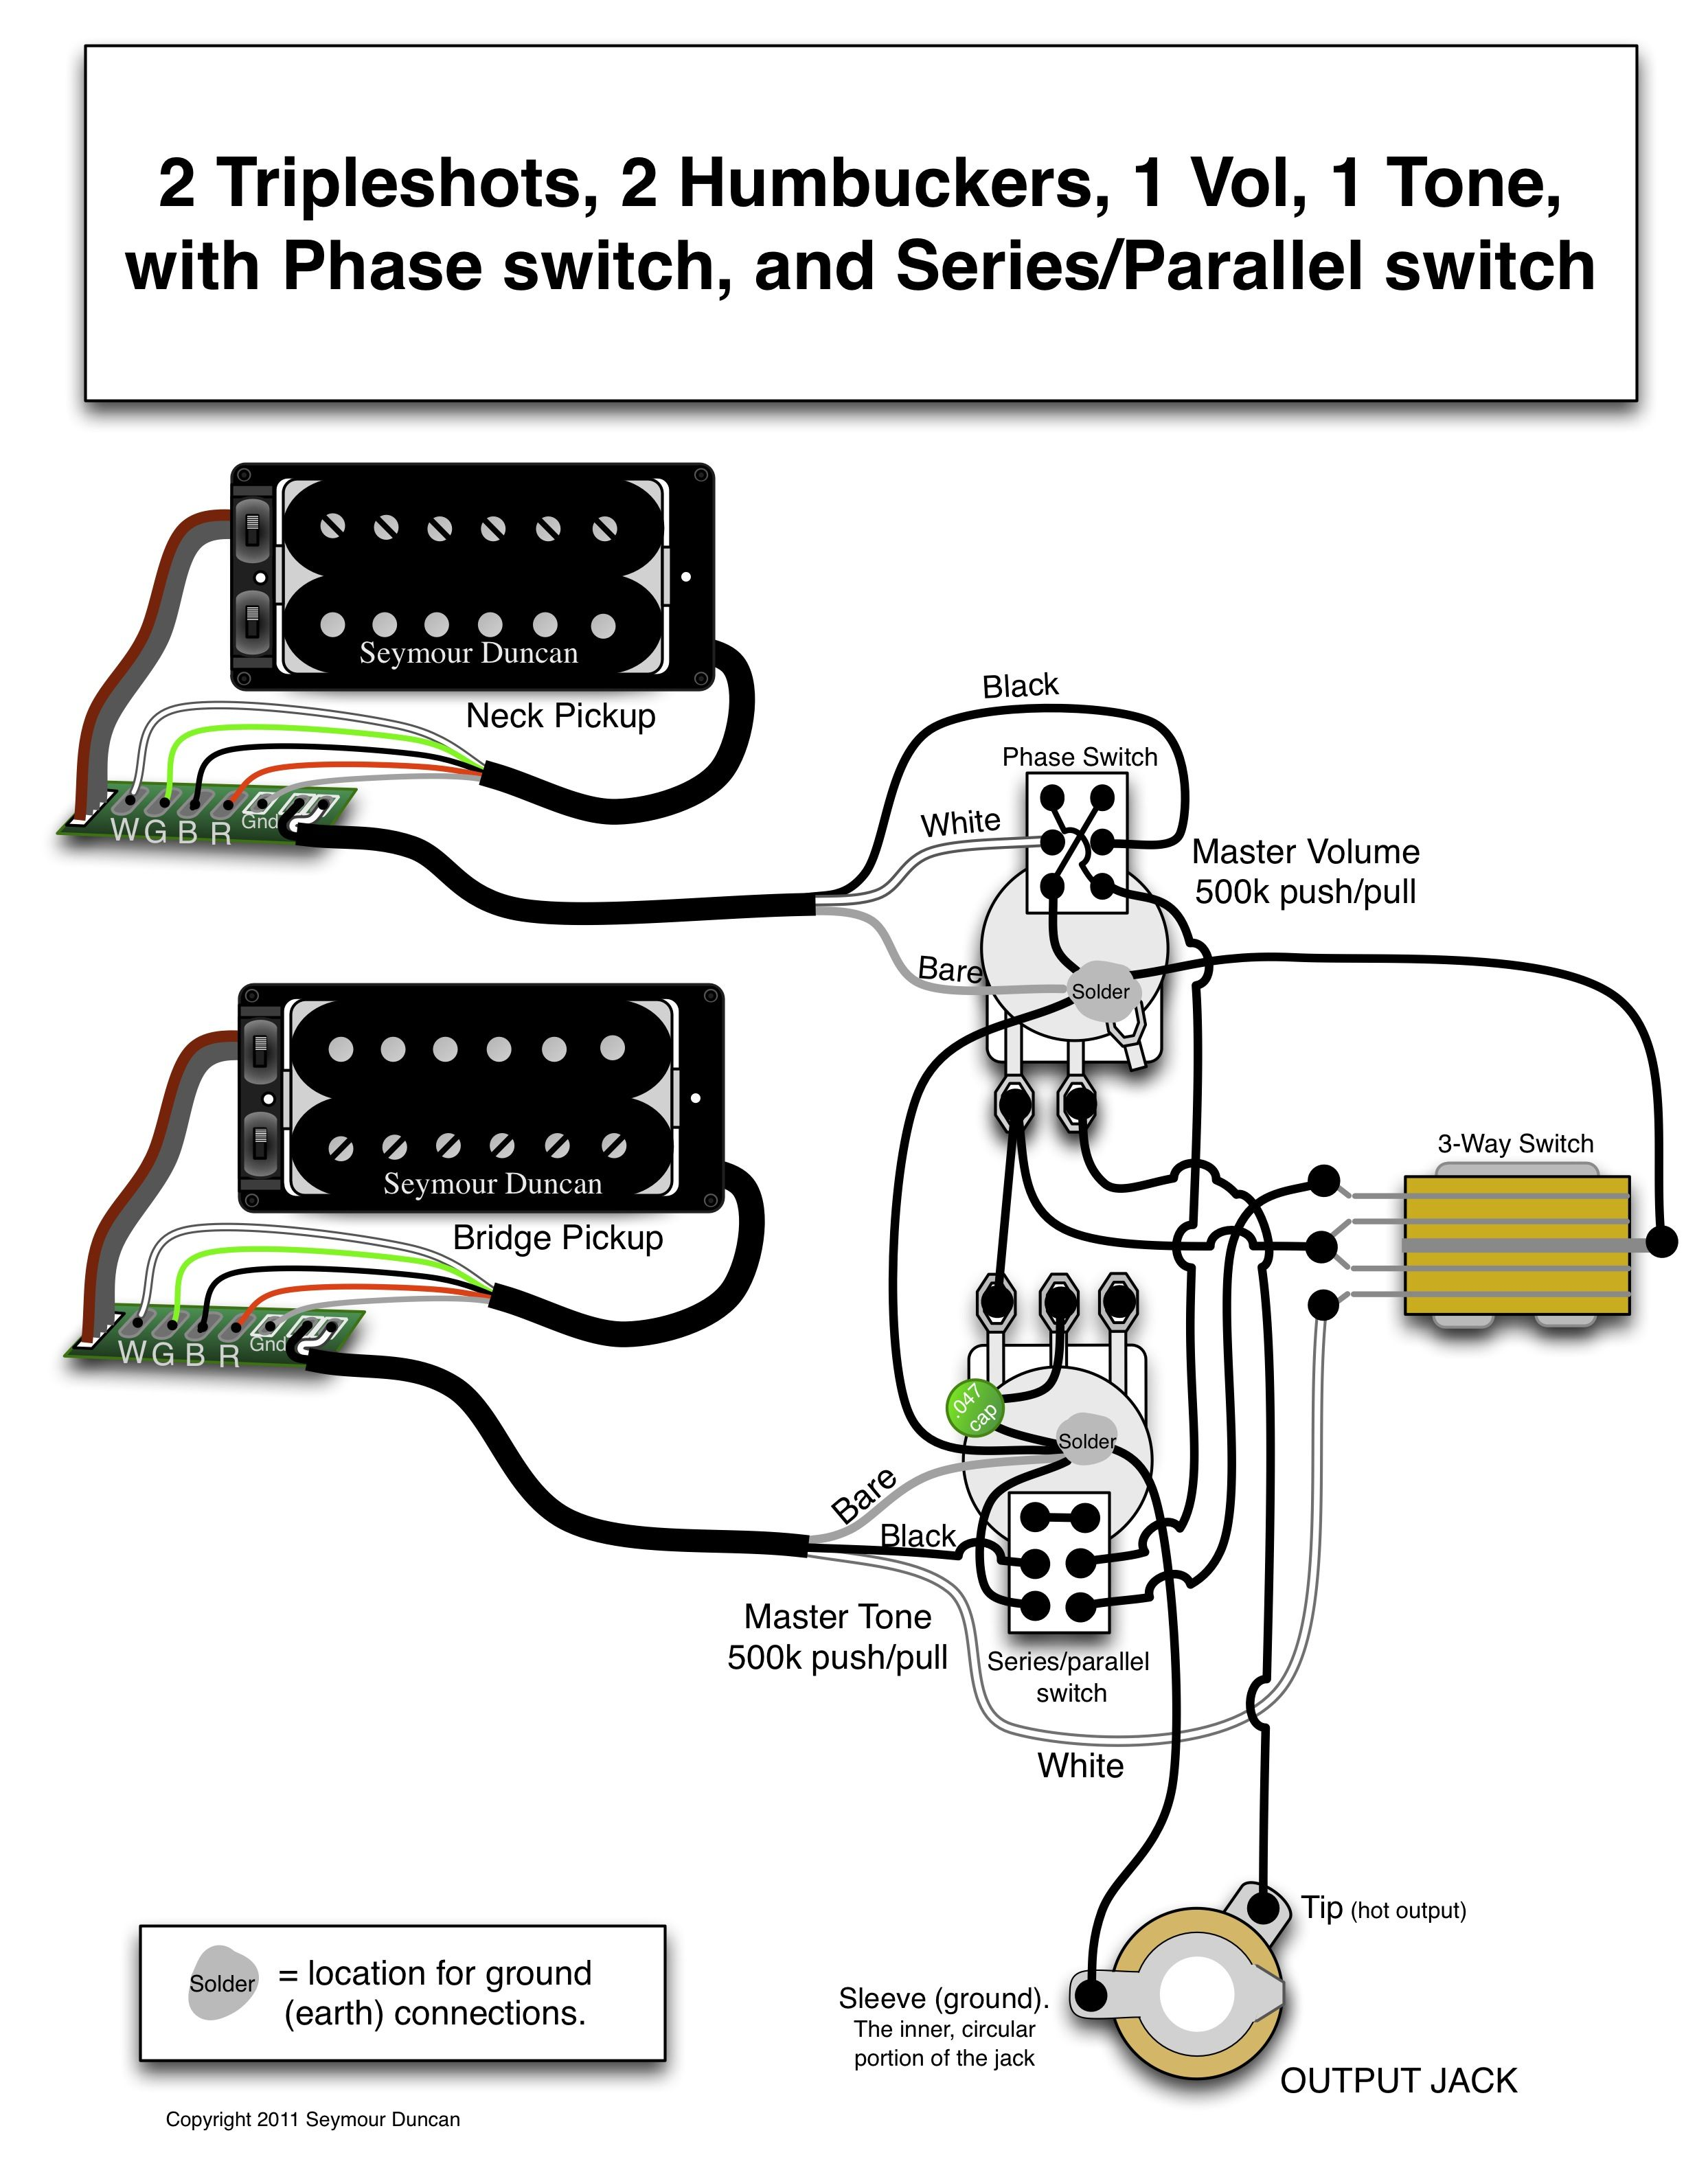 Seymour Duncan wiring diagram - 2 Triple Shots, 2 Humbuckers ... on switch circuit diagram, switch lights, network switch diagram, relay switch diagram, wall switch diagram, switch starter diagram, 3-way switch diagram, switch battery diagram, electrical outlets diagram, switch socket diagram, rocker switch diagram, switch outlets diagram,